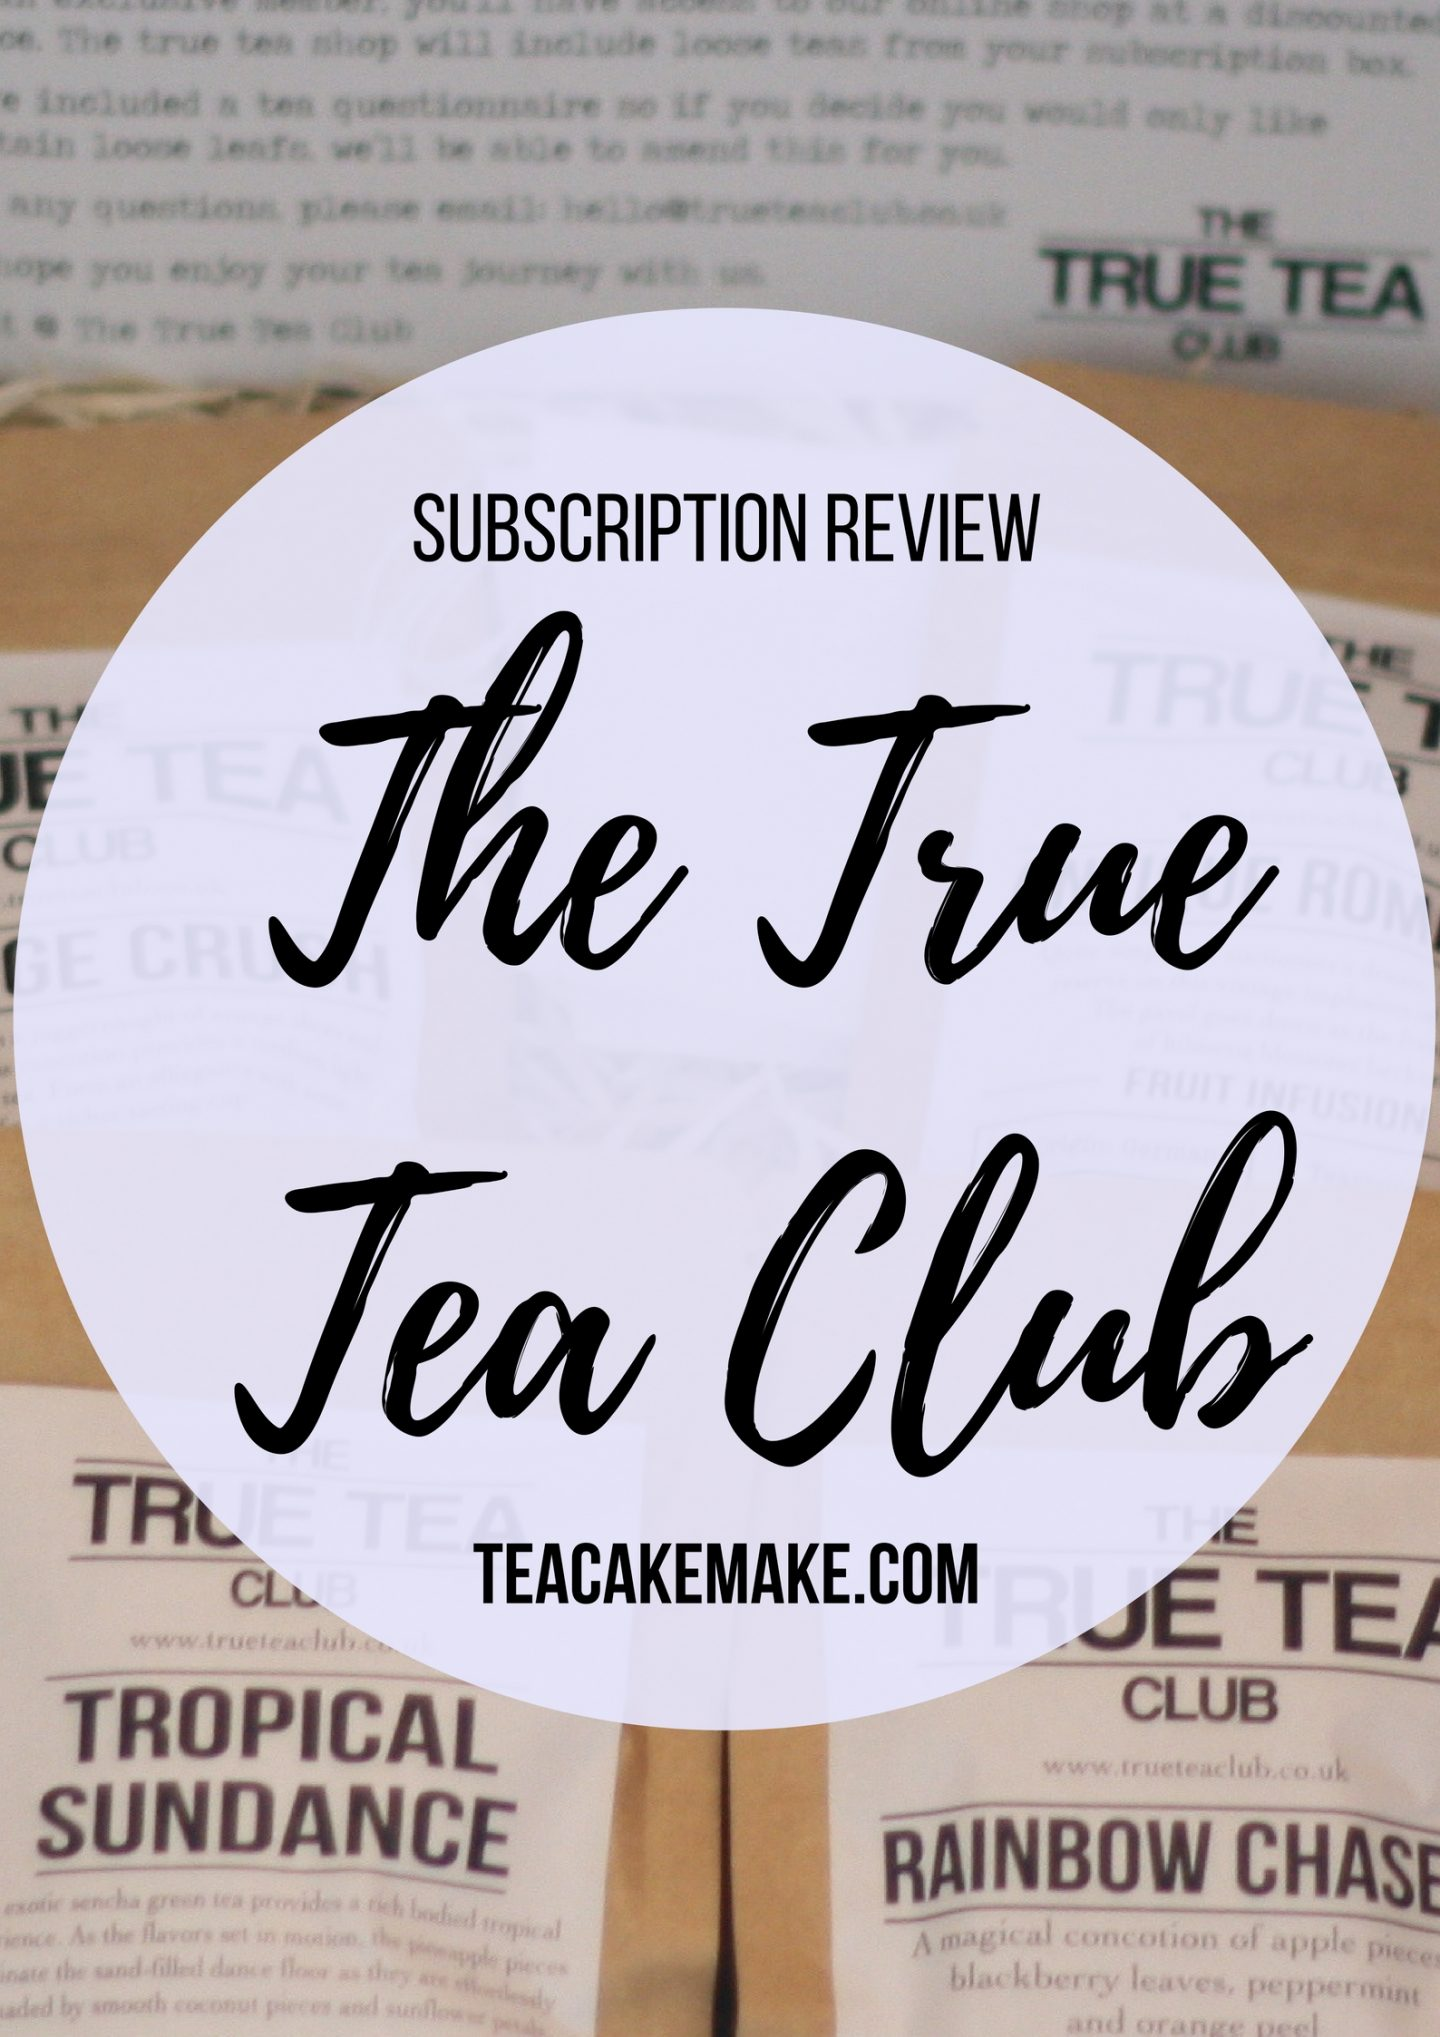 True Tea Club Subscription Review